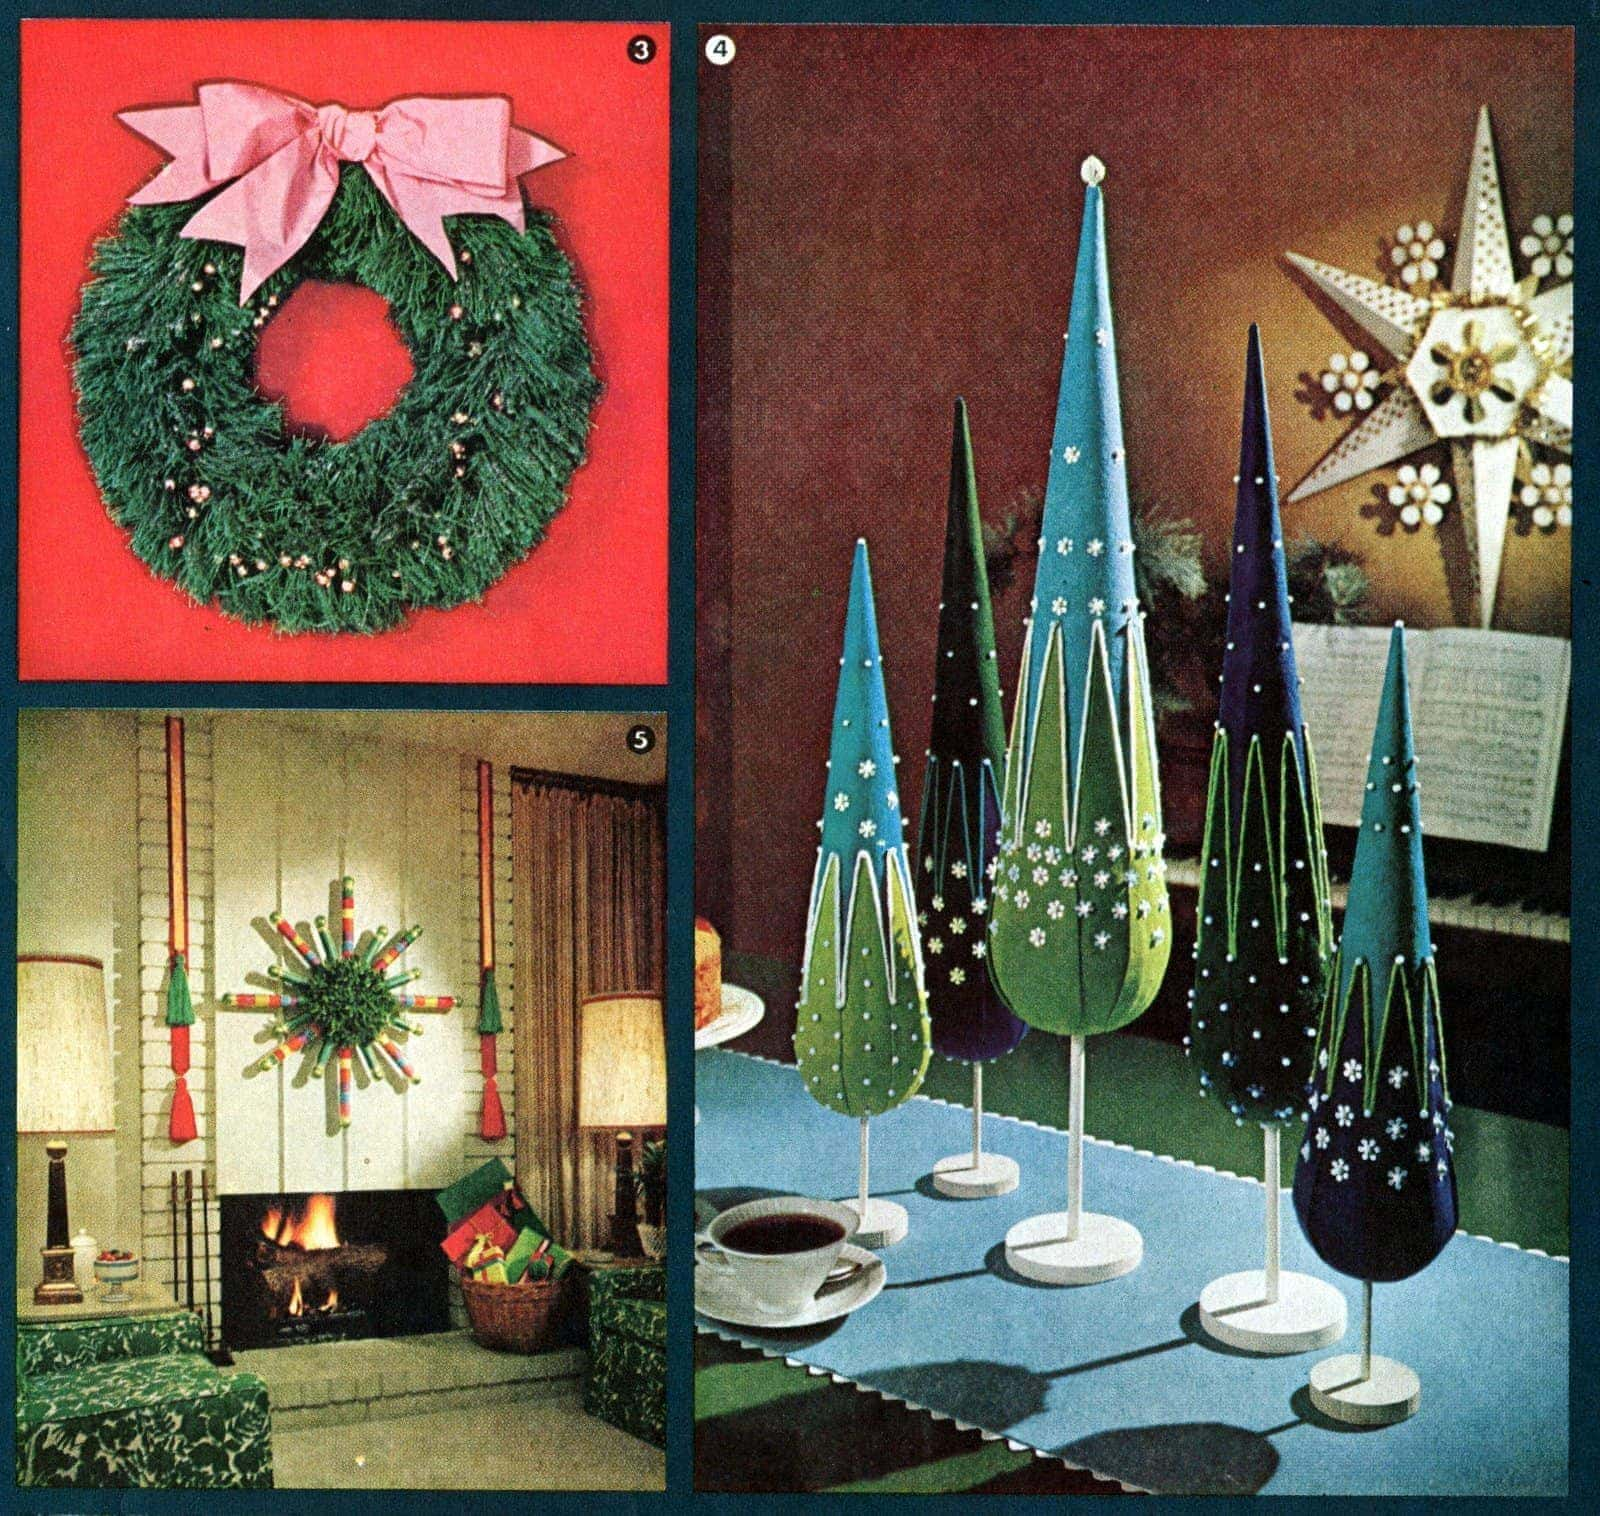 Retro Holiday Decor You Can Make (1964)  Click Americana